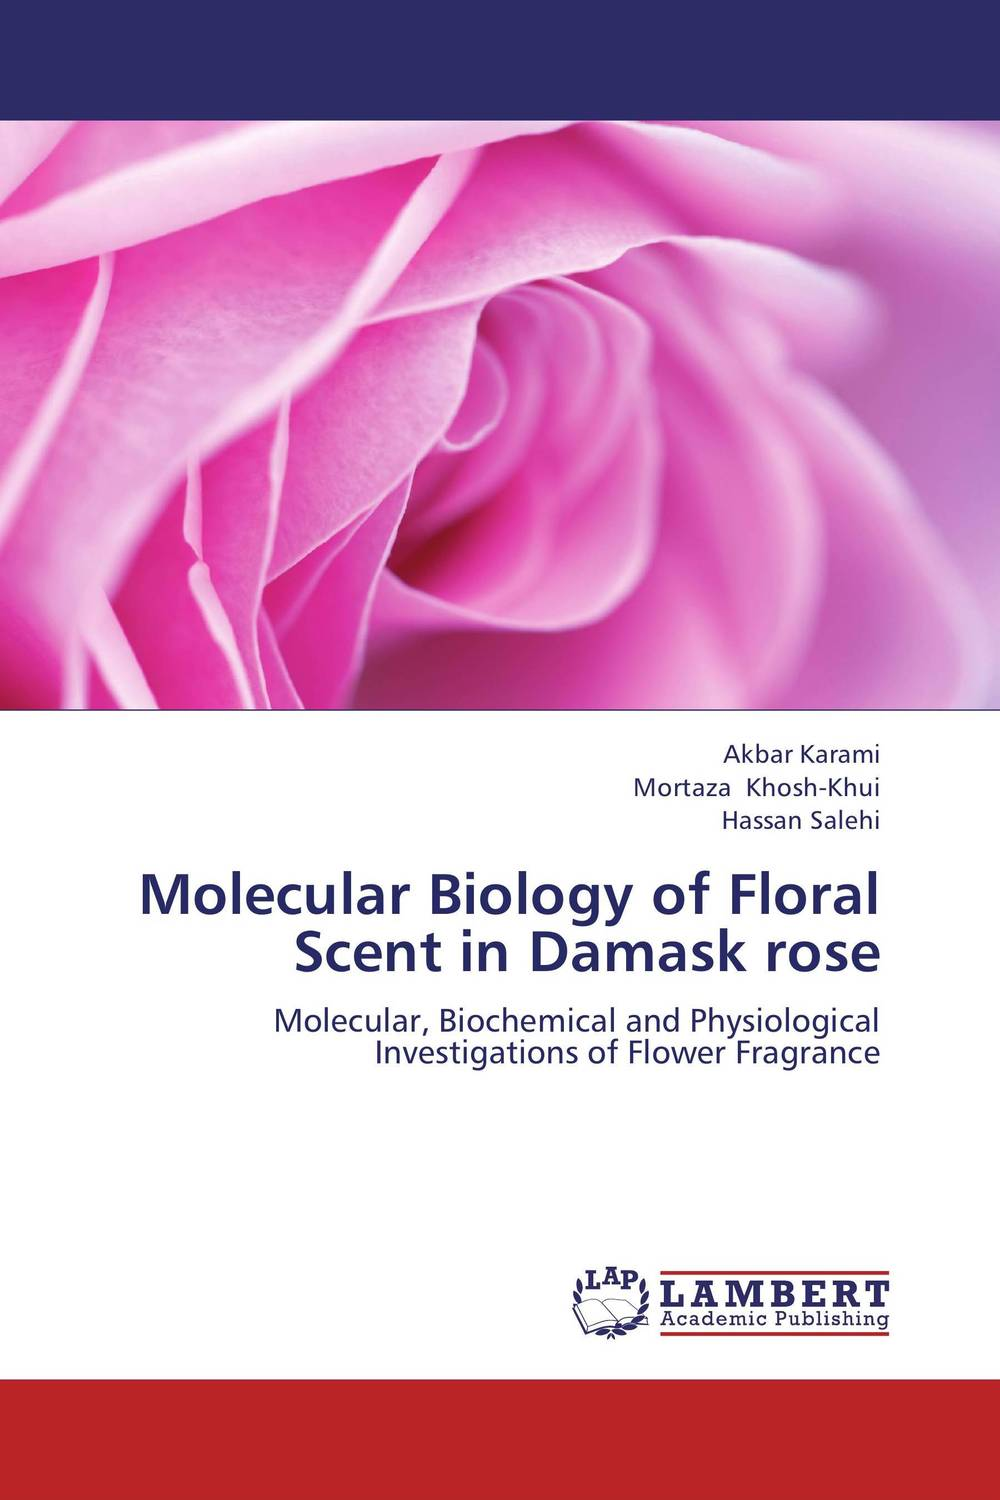 Molecular Biology of Floral Scent in Damask rose purnima sareen sundeep kumar and rakesh singh molecular and pathological characterization of slow rusting in wheat